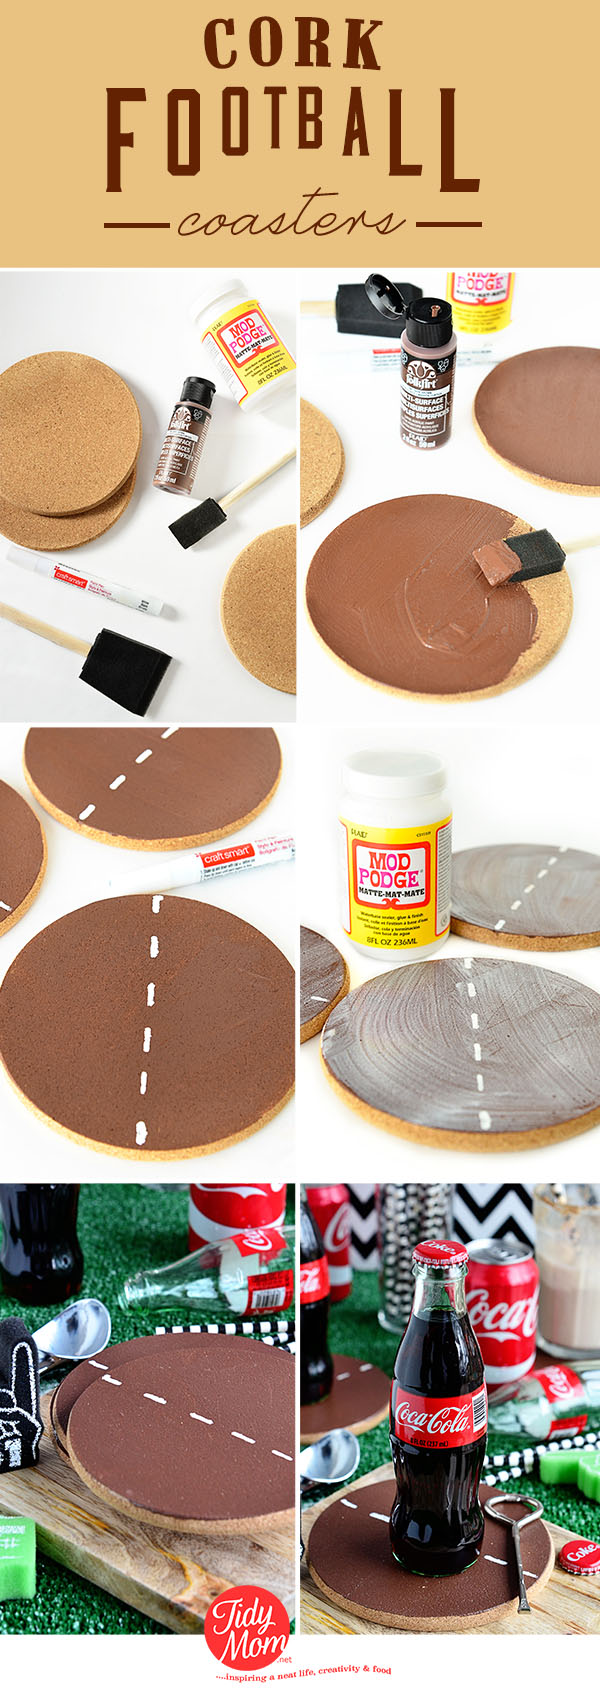 DIY Cork Football Coasters tutorial at TidyMom.net